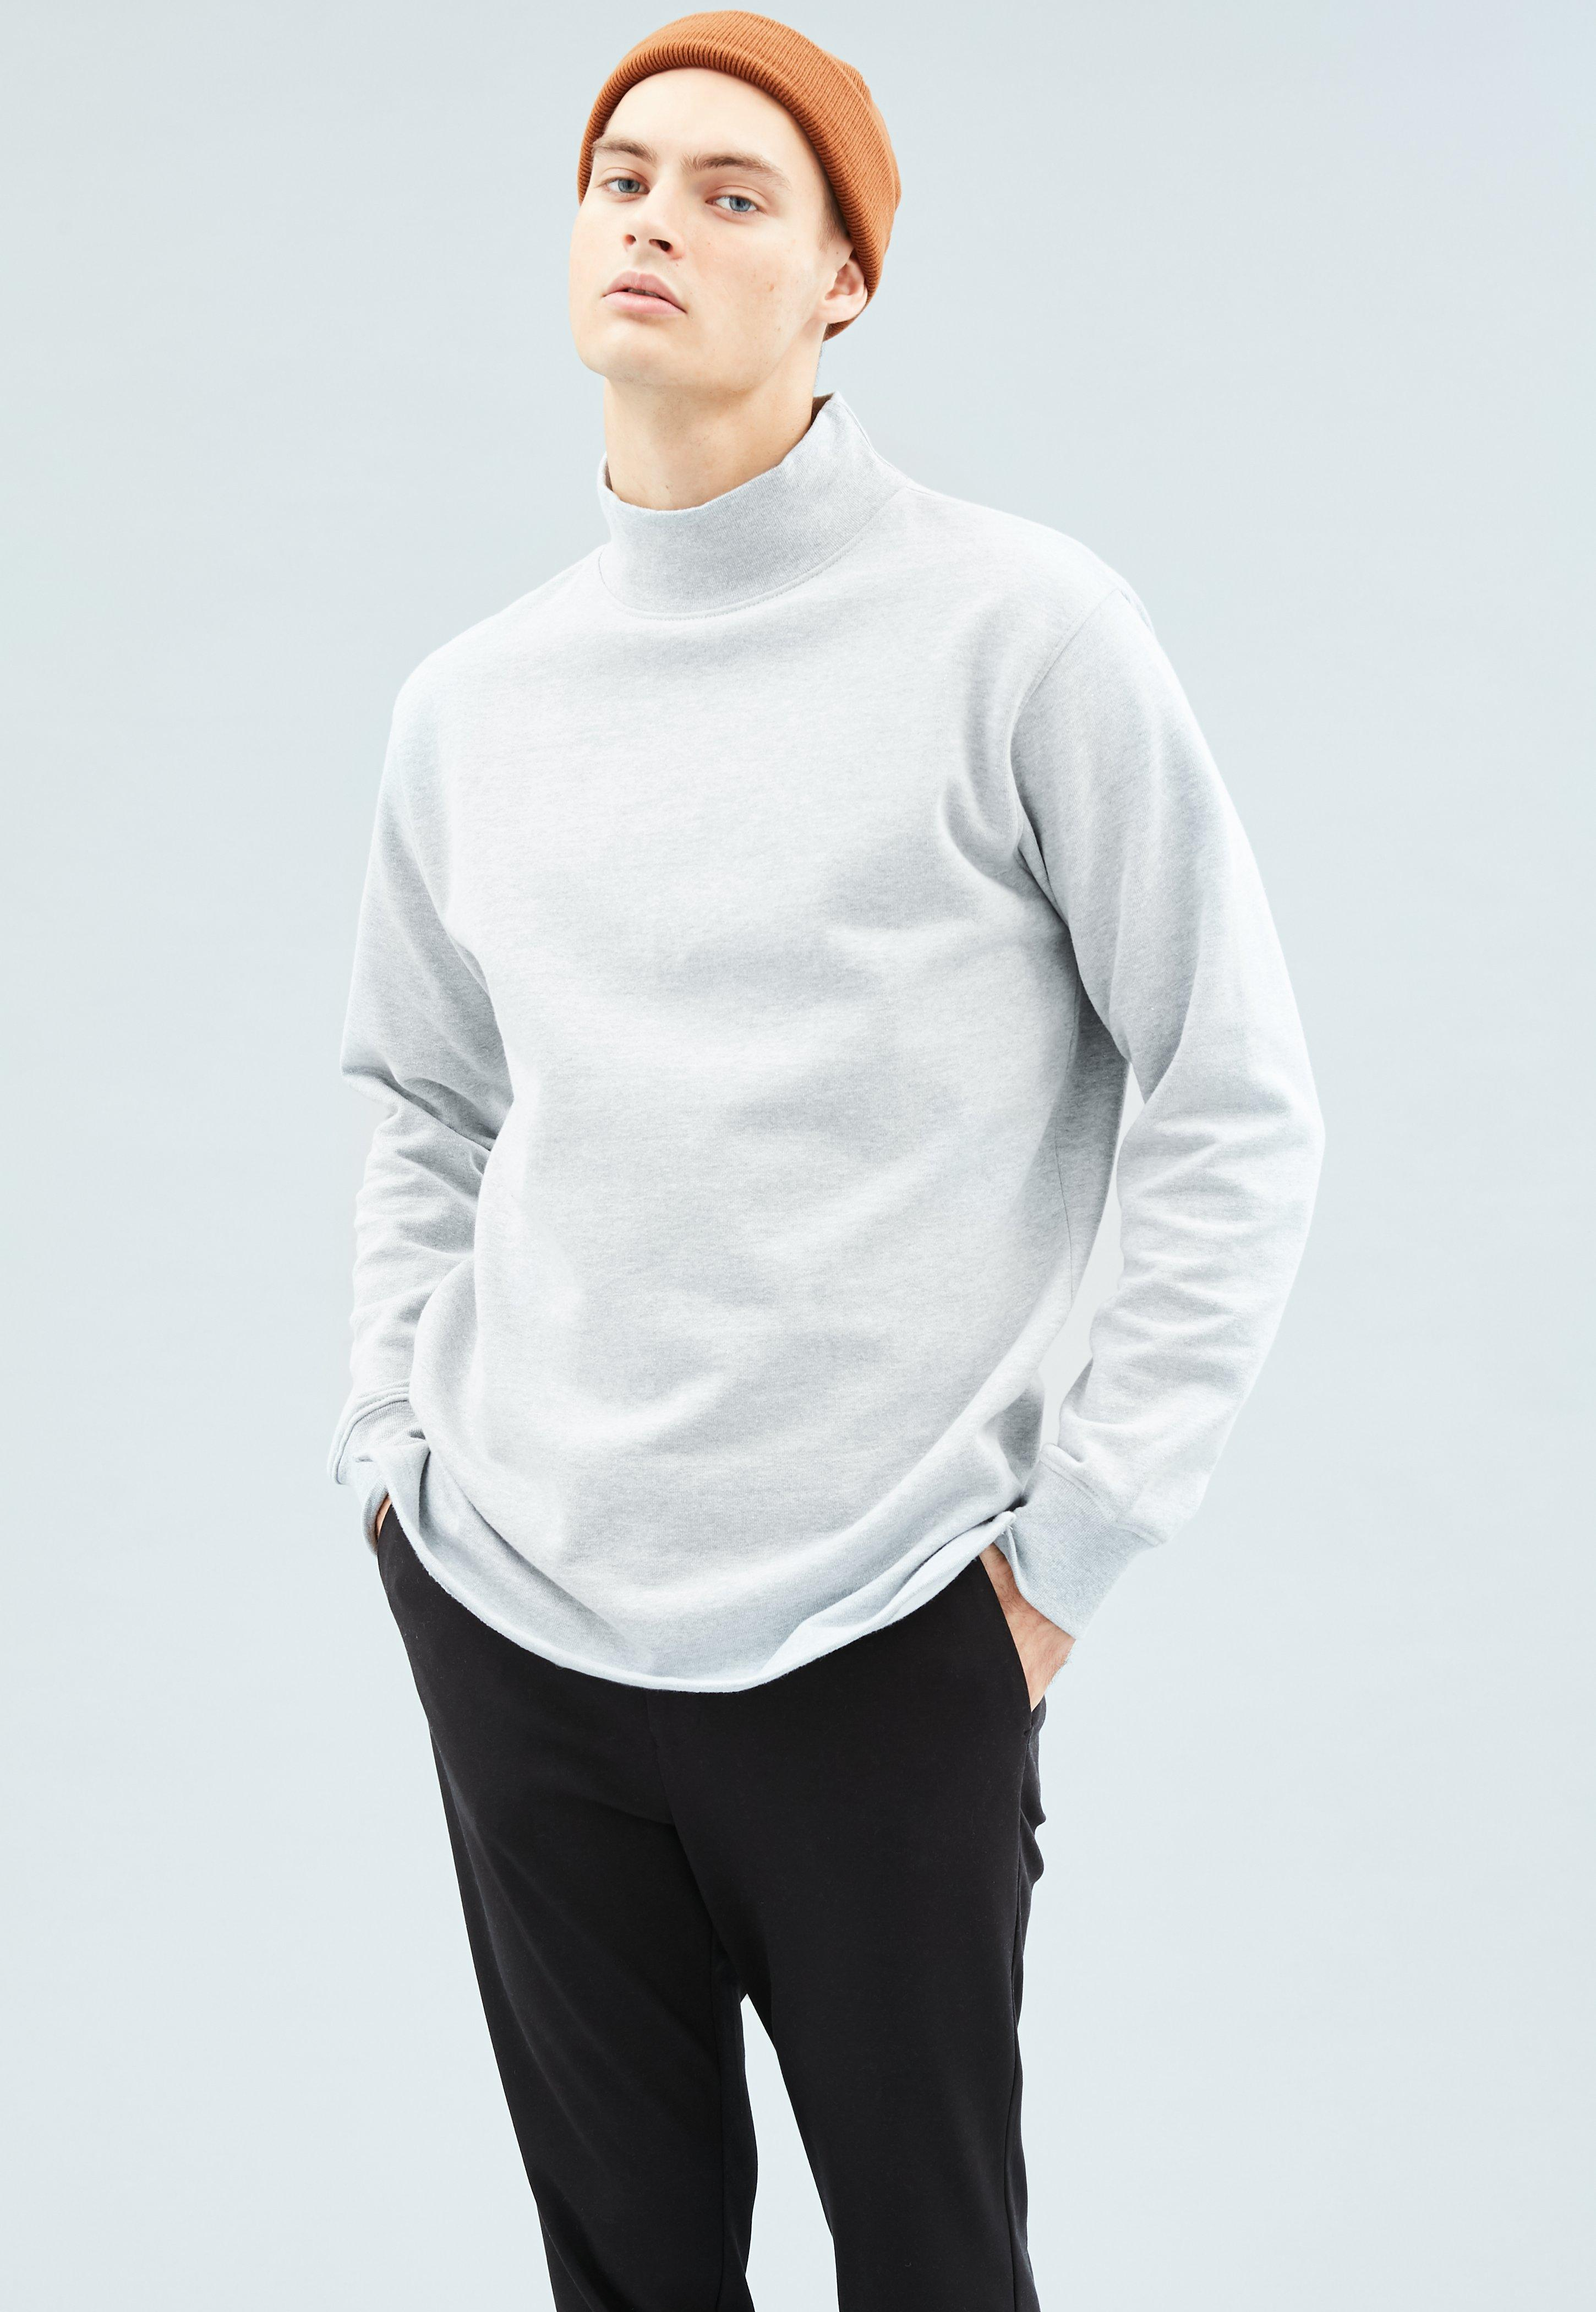 Sweatshirt High Cuffed Mennace Premium Grey Neck xZpUnqB